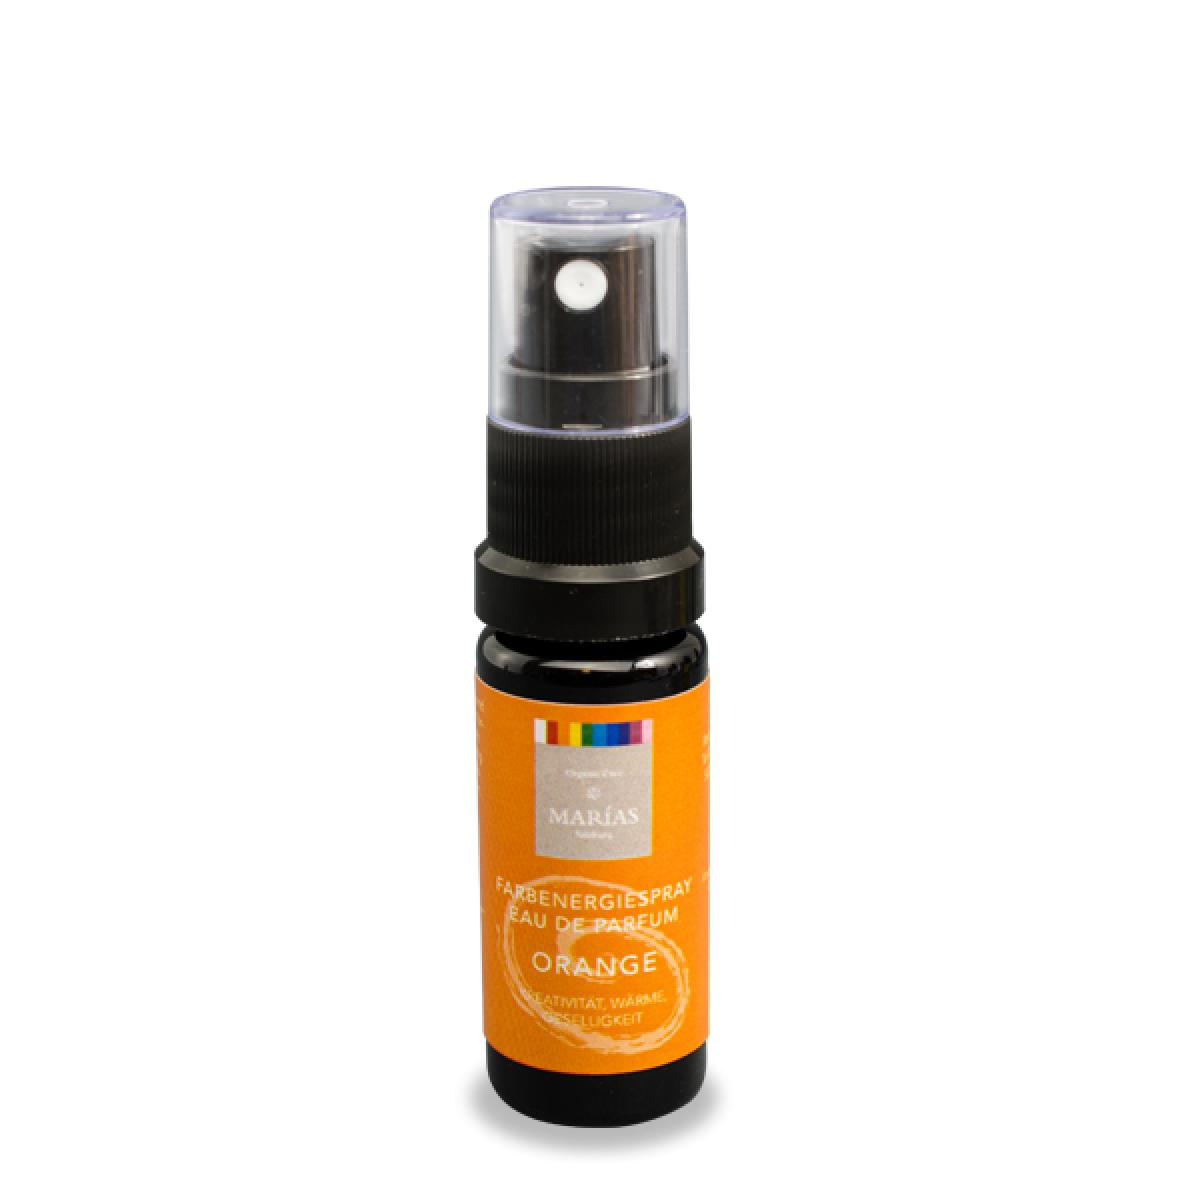 Farbenergie-Spray Eau de Parfum orange, 10 ml